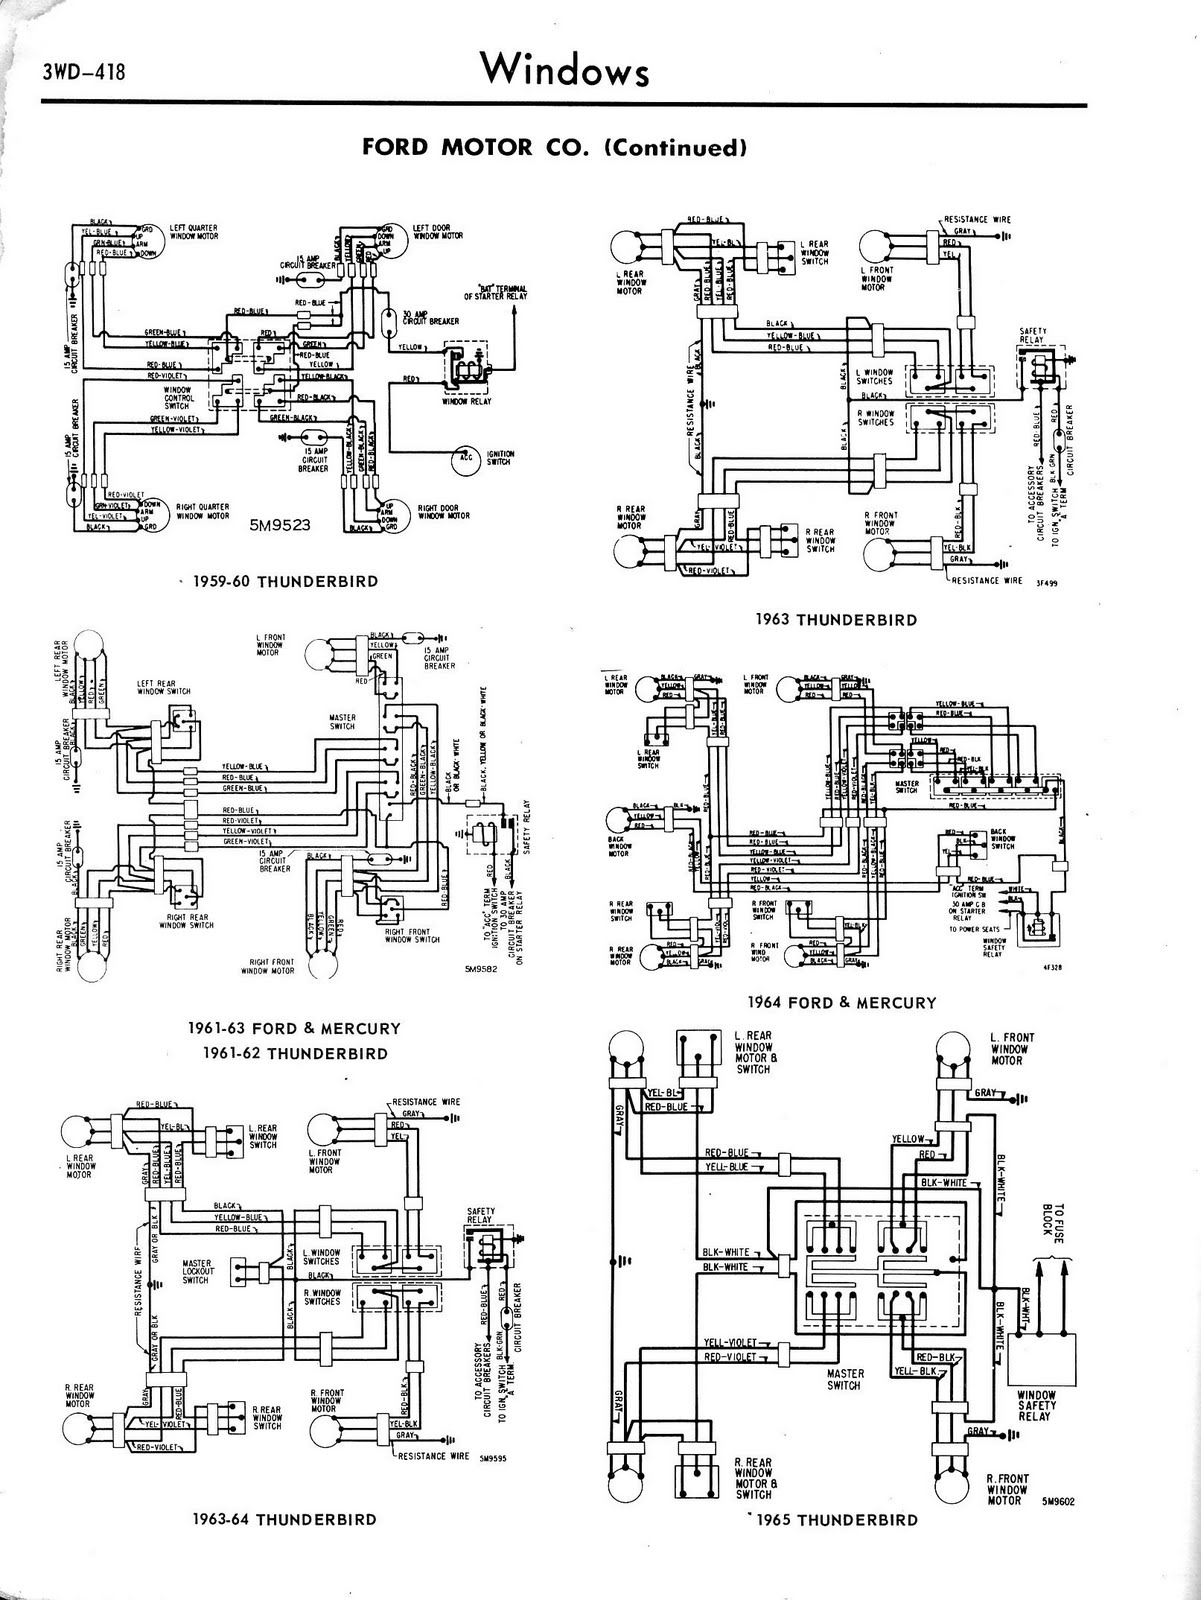 1965 ford thunderbird wiring diagram eTiVnLI 1965 ford thunderbird wiring diagram image details 1963 ford thunderbird fuse box location at edmiracle.co